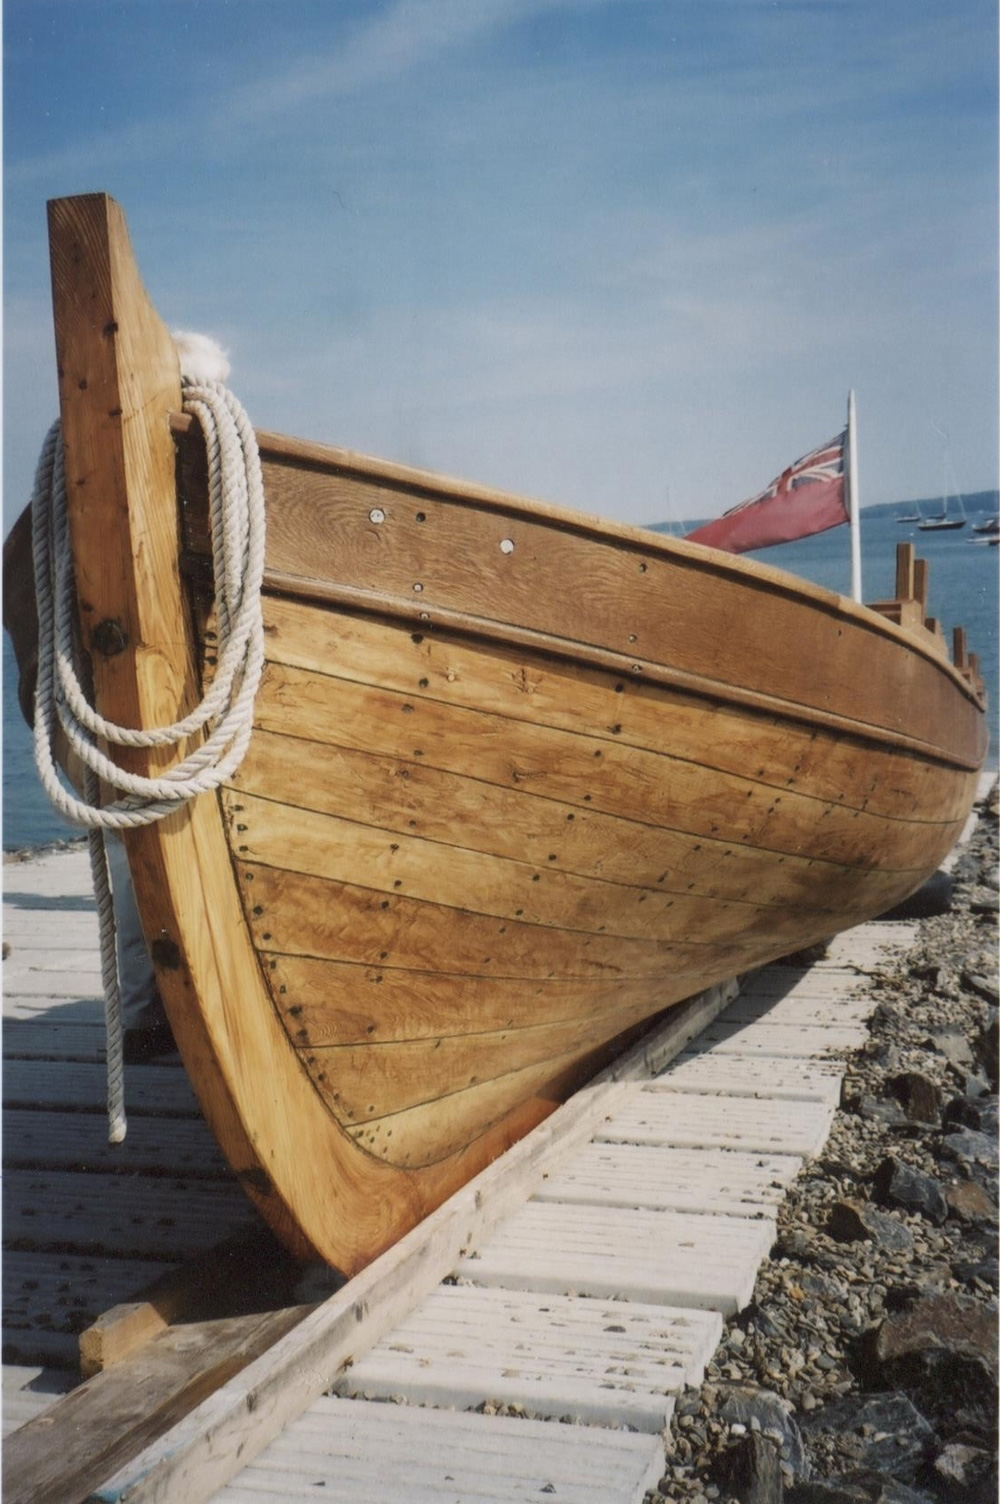 32' Pinnace, 1605 Replica